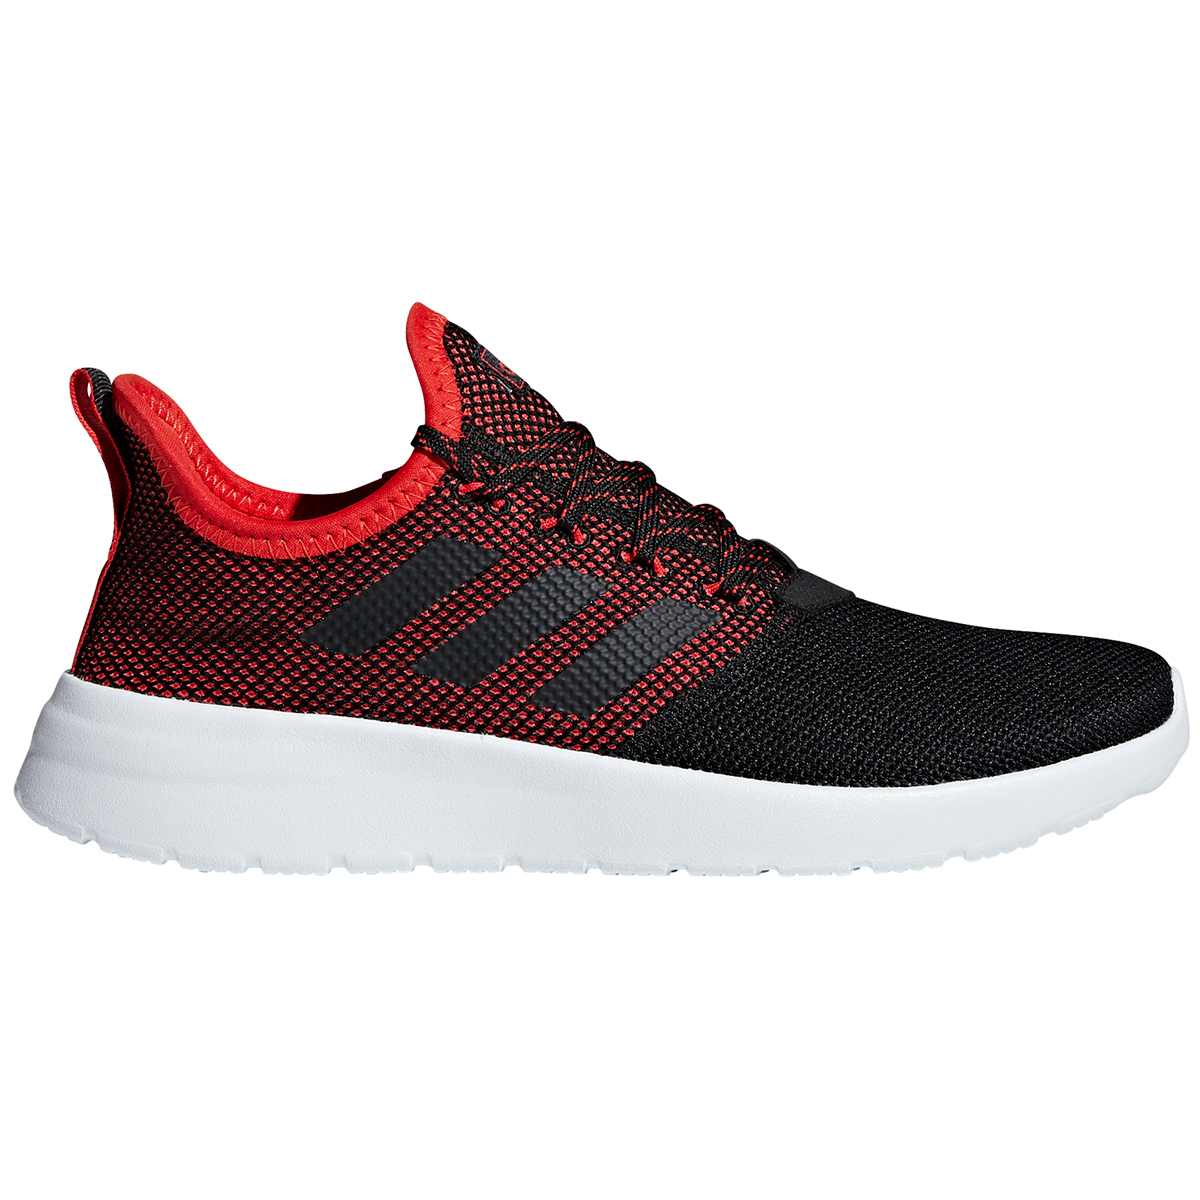 Adidas Men's Lite Racer Reborn Sneakers - Black, 10.5